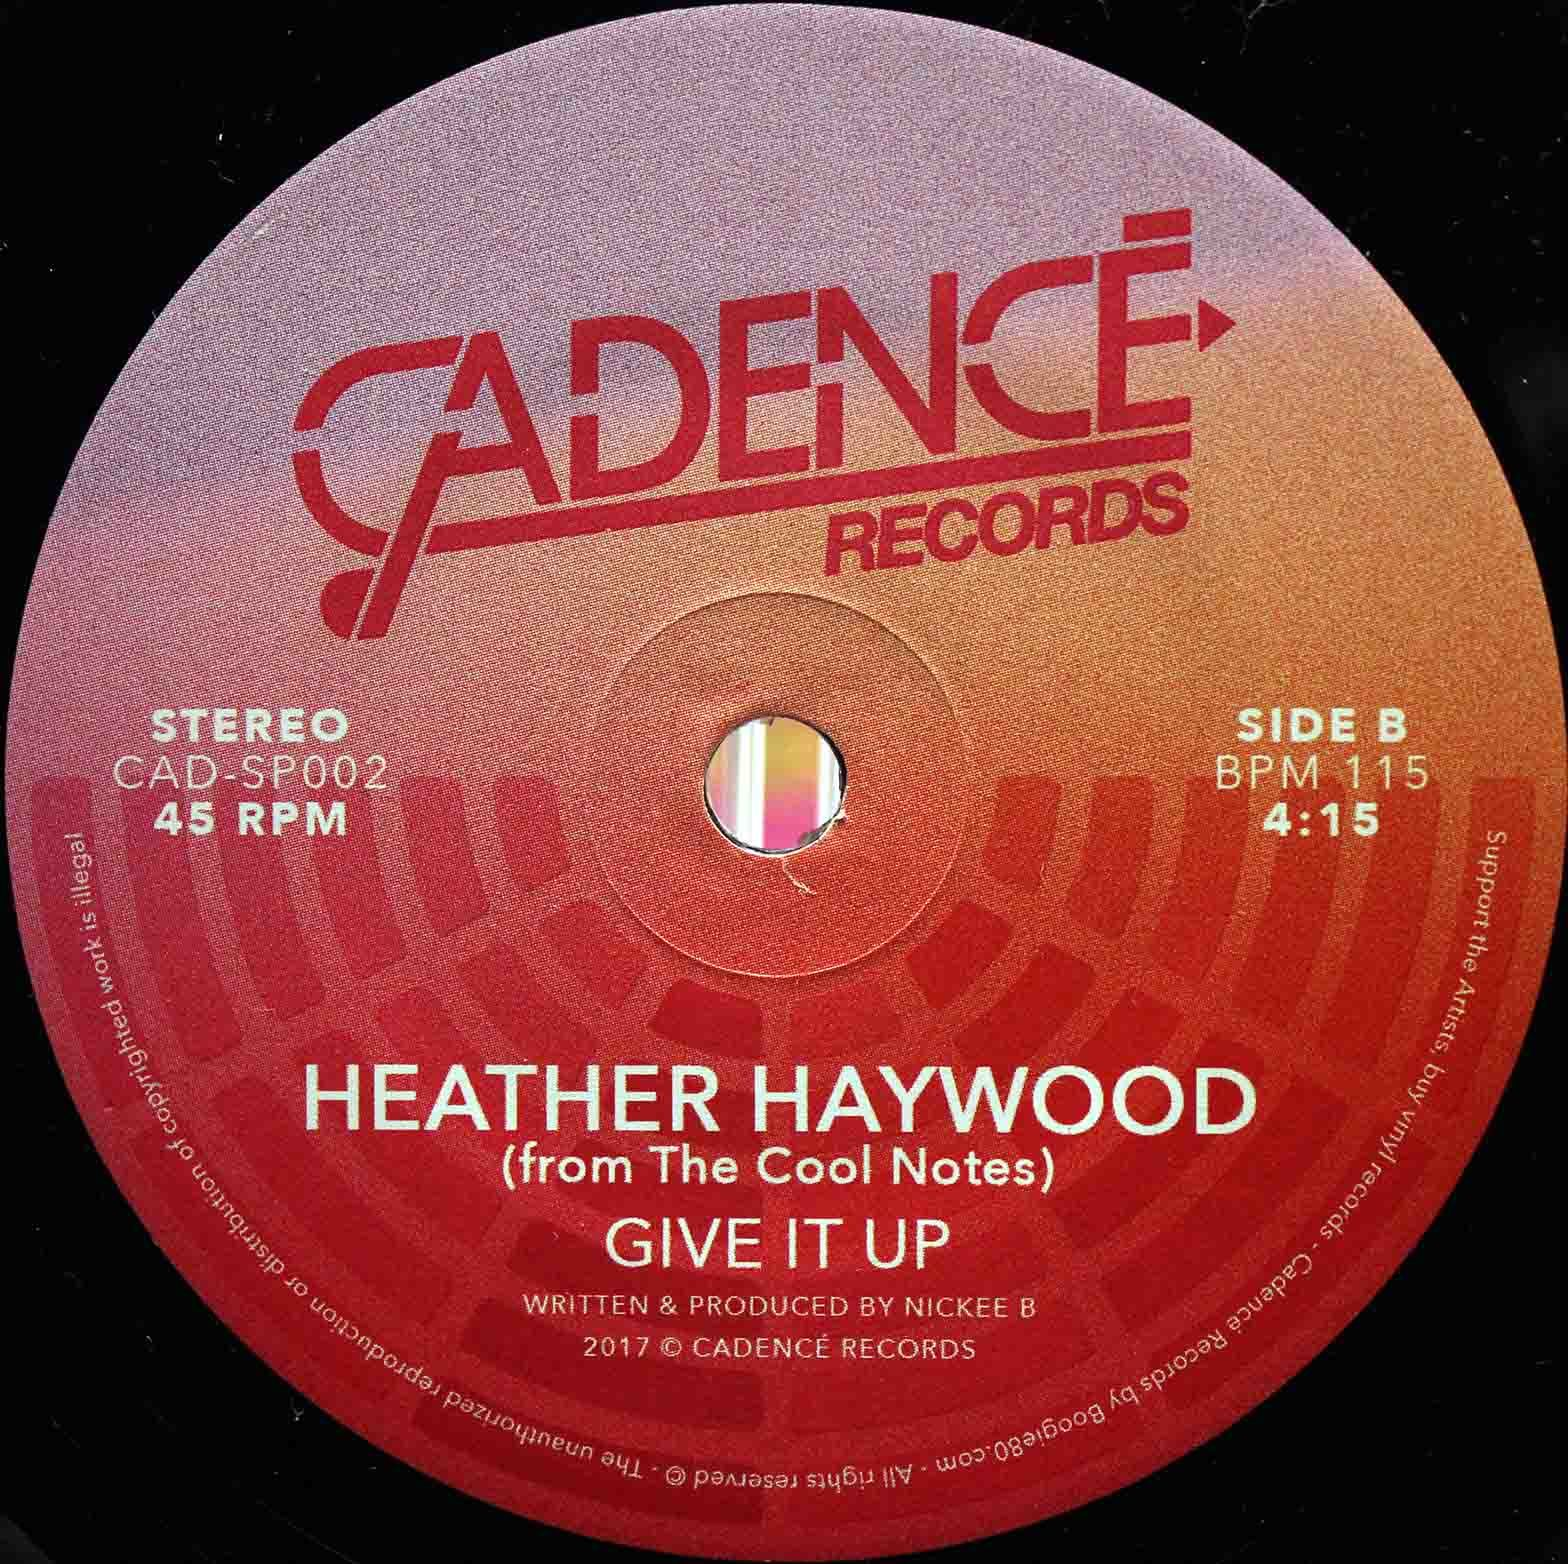 Heather Haywood From The Cool Notes – Party Tonight 06